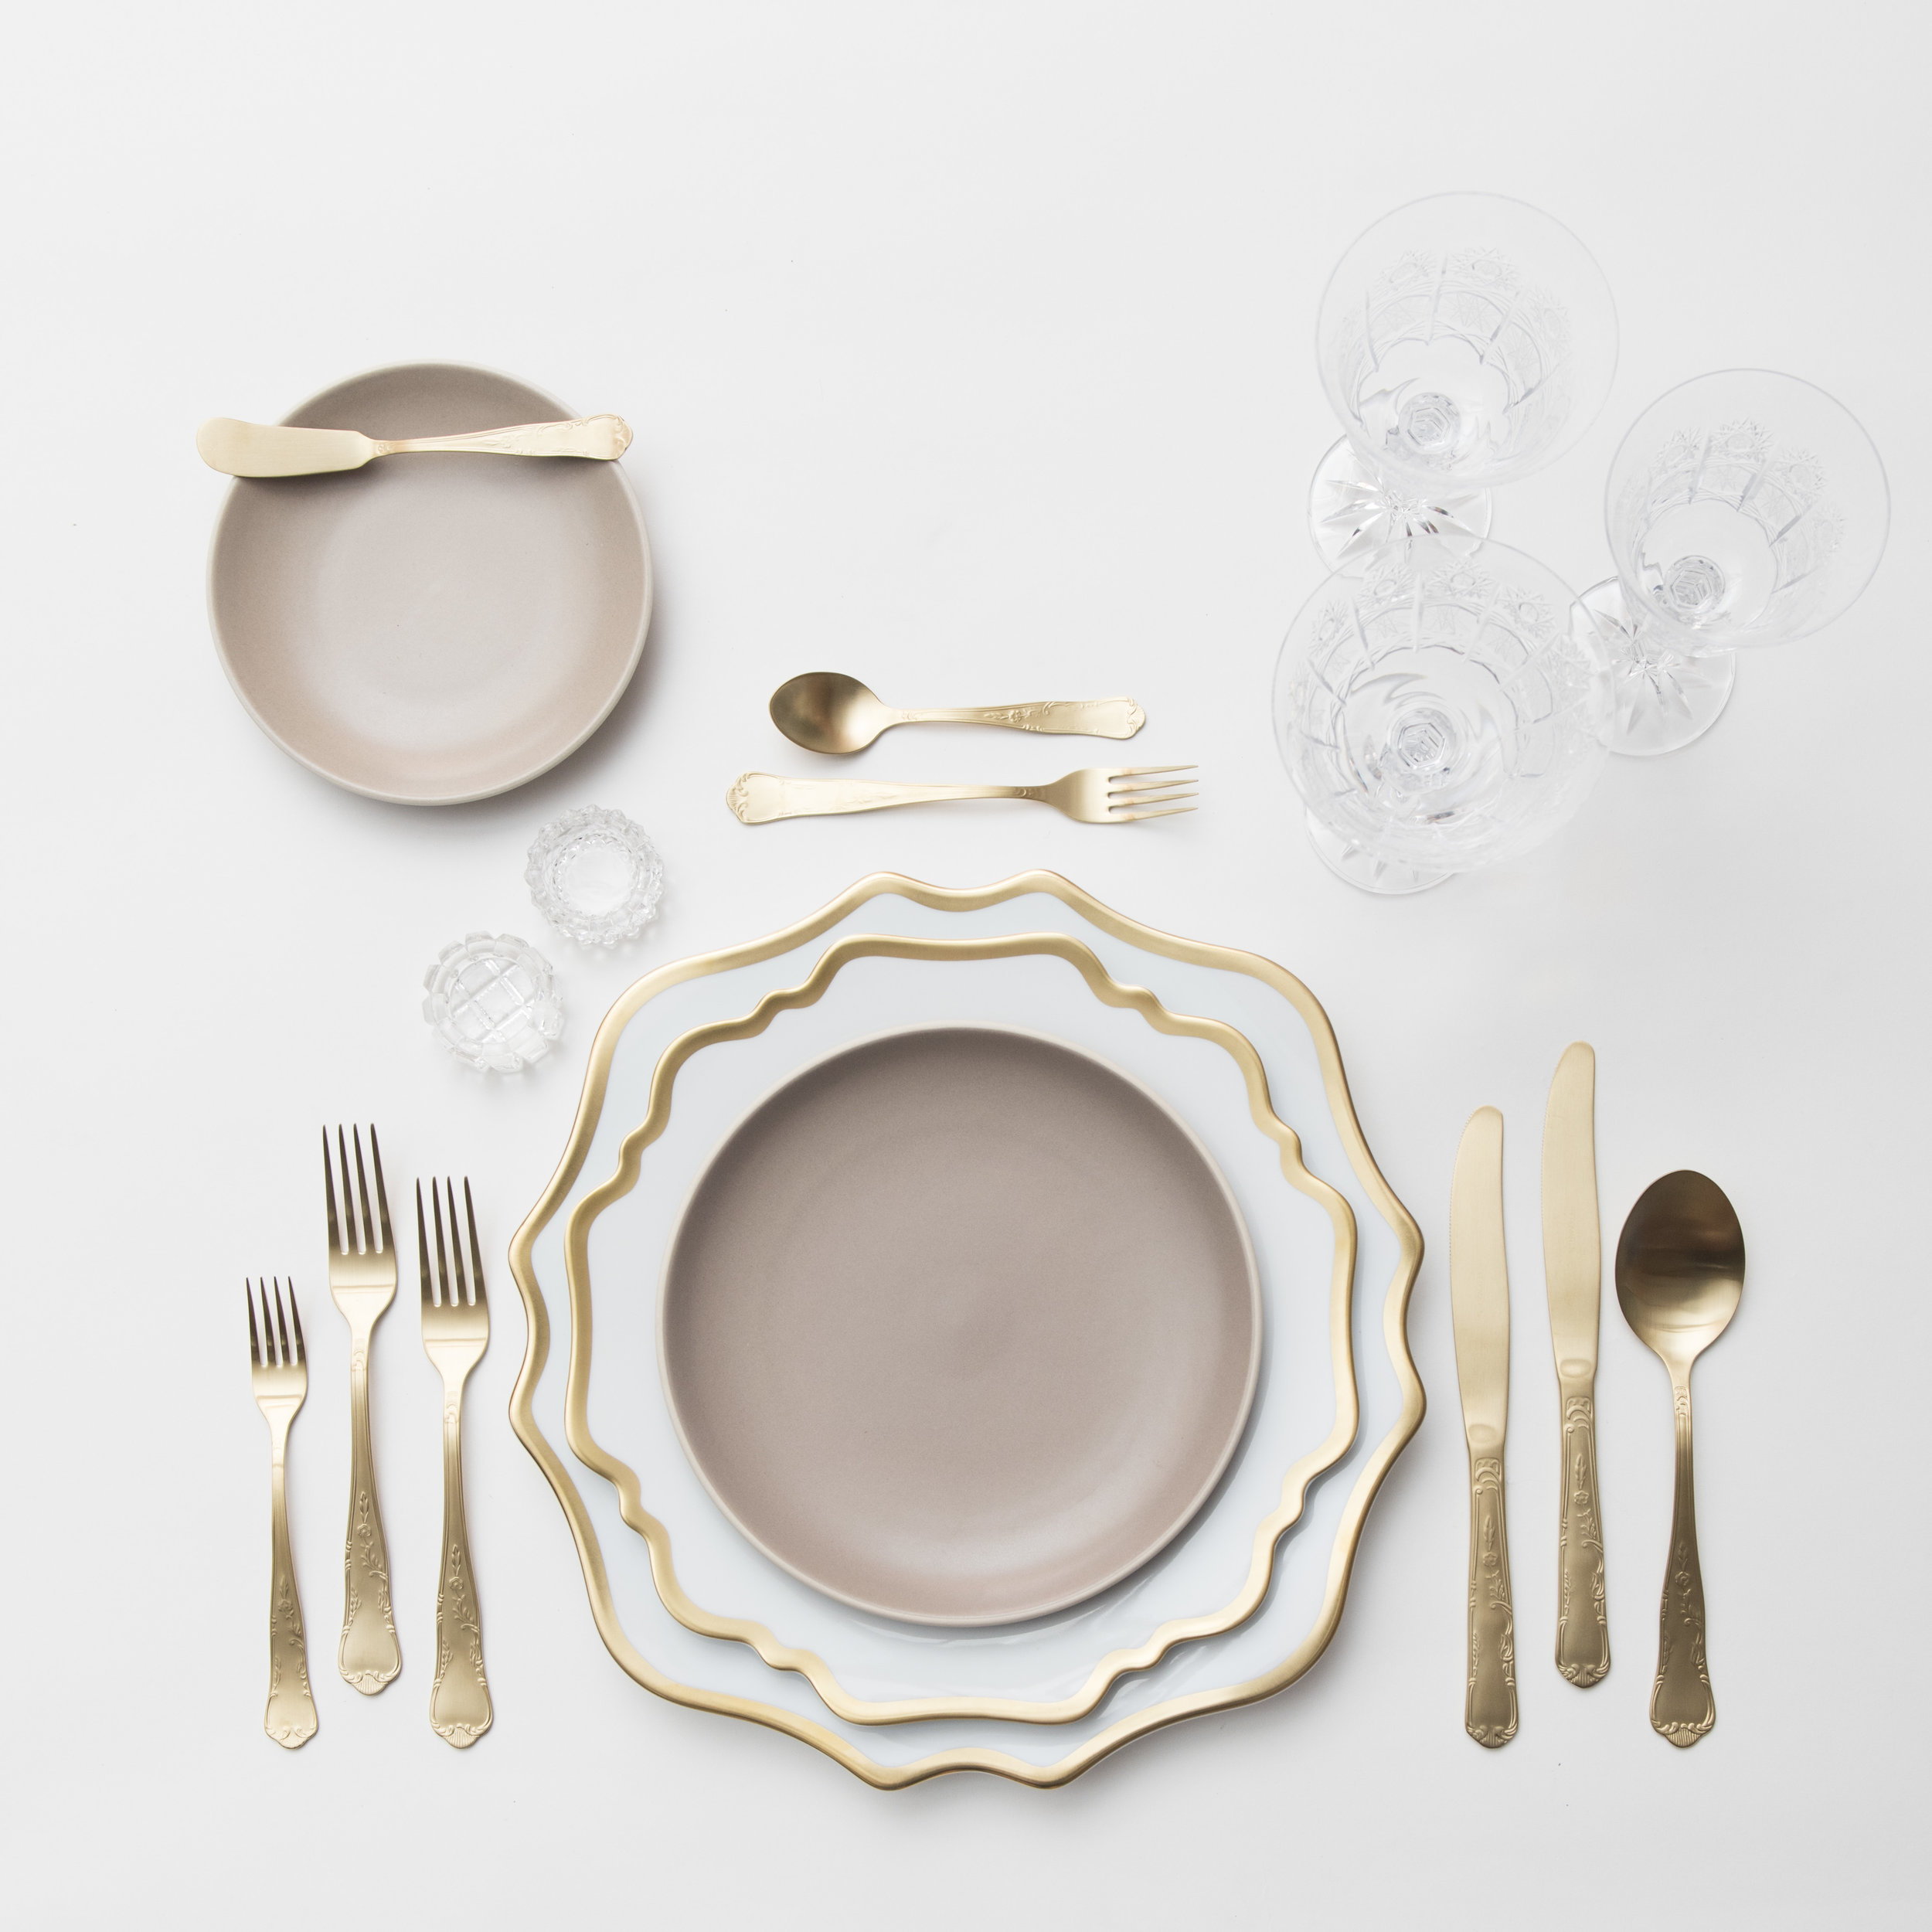 RENT: Anna Weatherley Chargers/Dinnerware in White/Gold + Heath Ceramics in French Grey + Chateau Flatware in Matte Gold + Czech Crystal Stemware + Antique Crystal Salt Cellars  SHOP: Anna Weatherley Chargers/Dinnerware in White/Gold